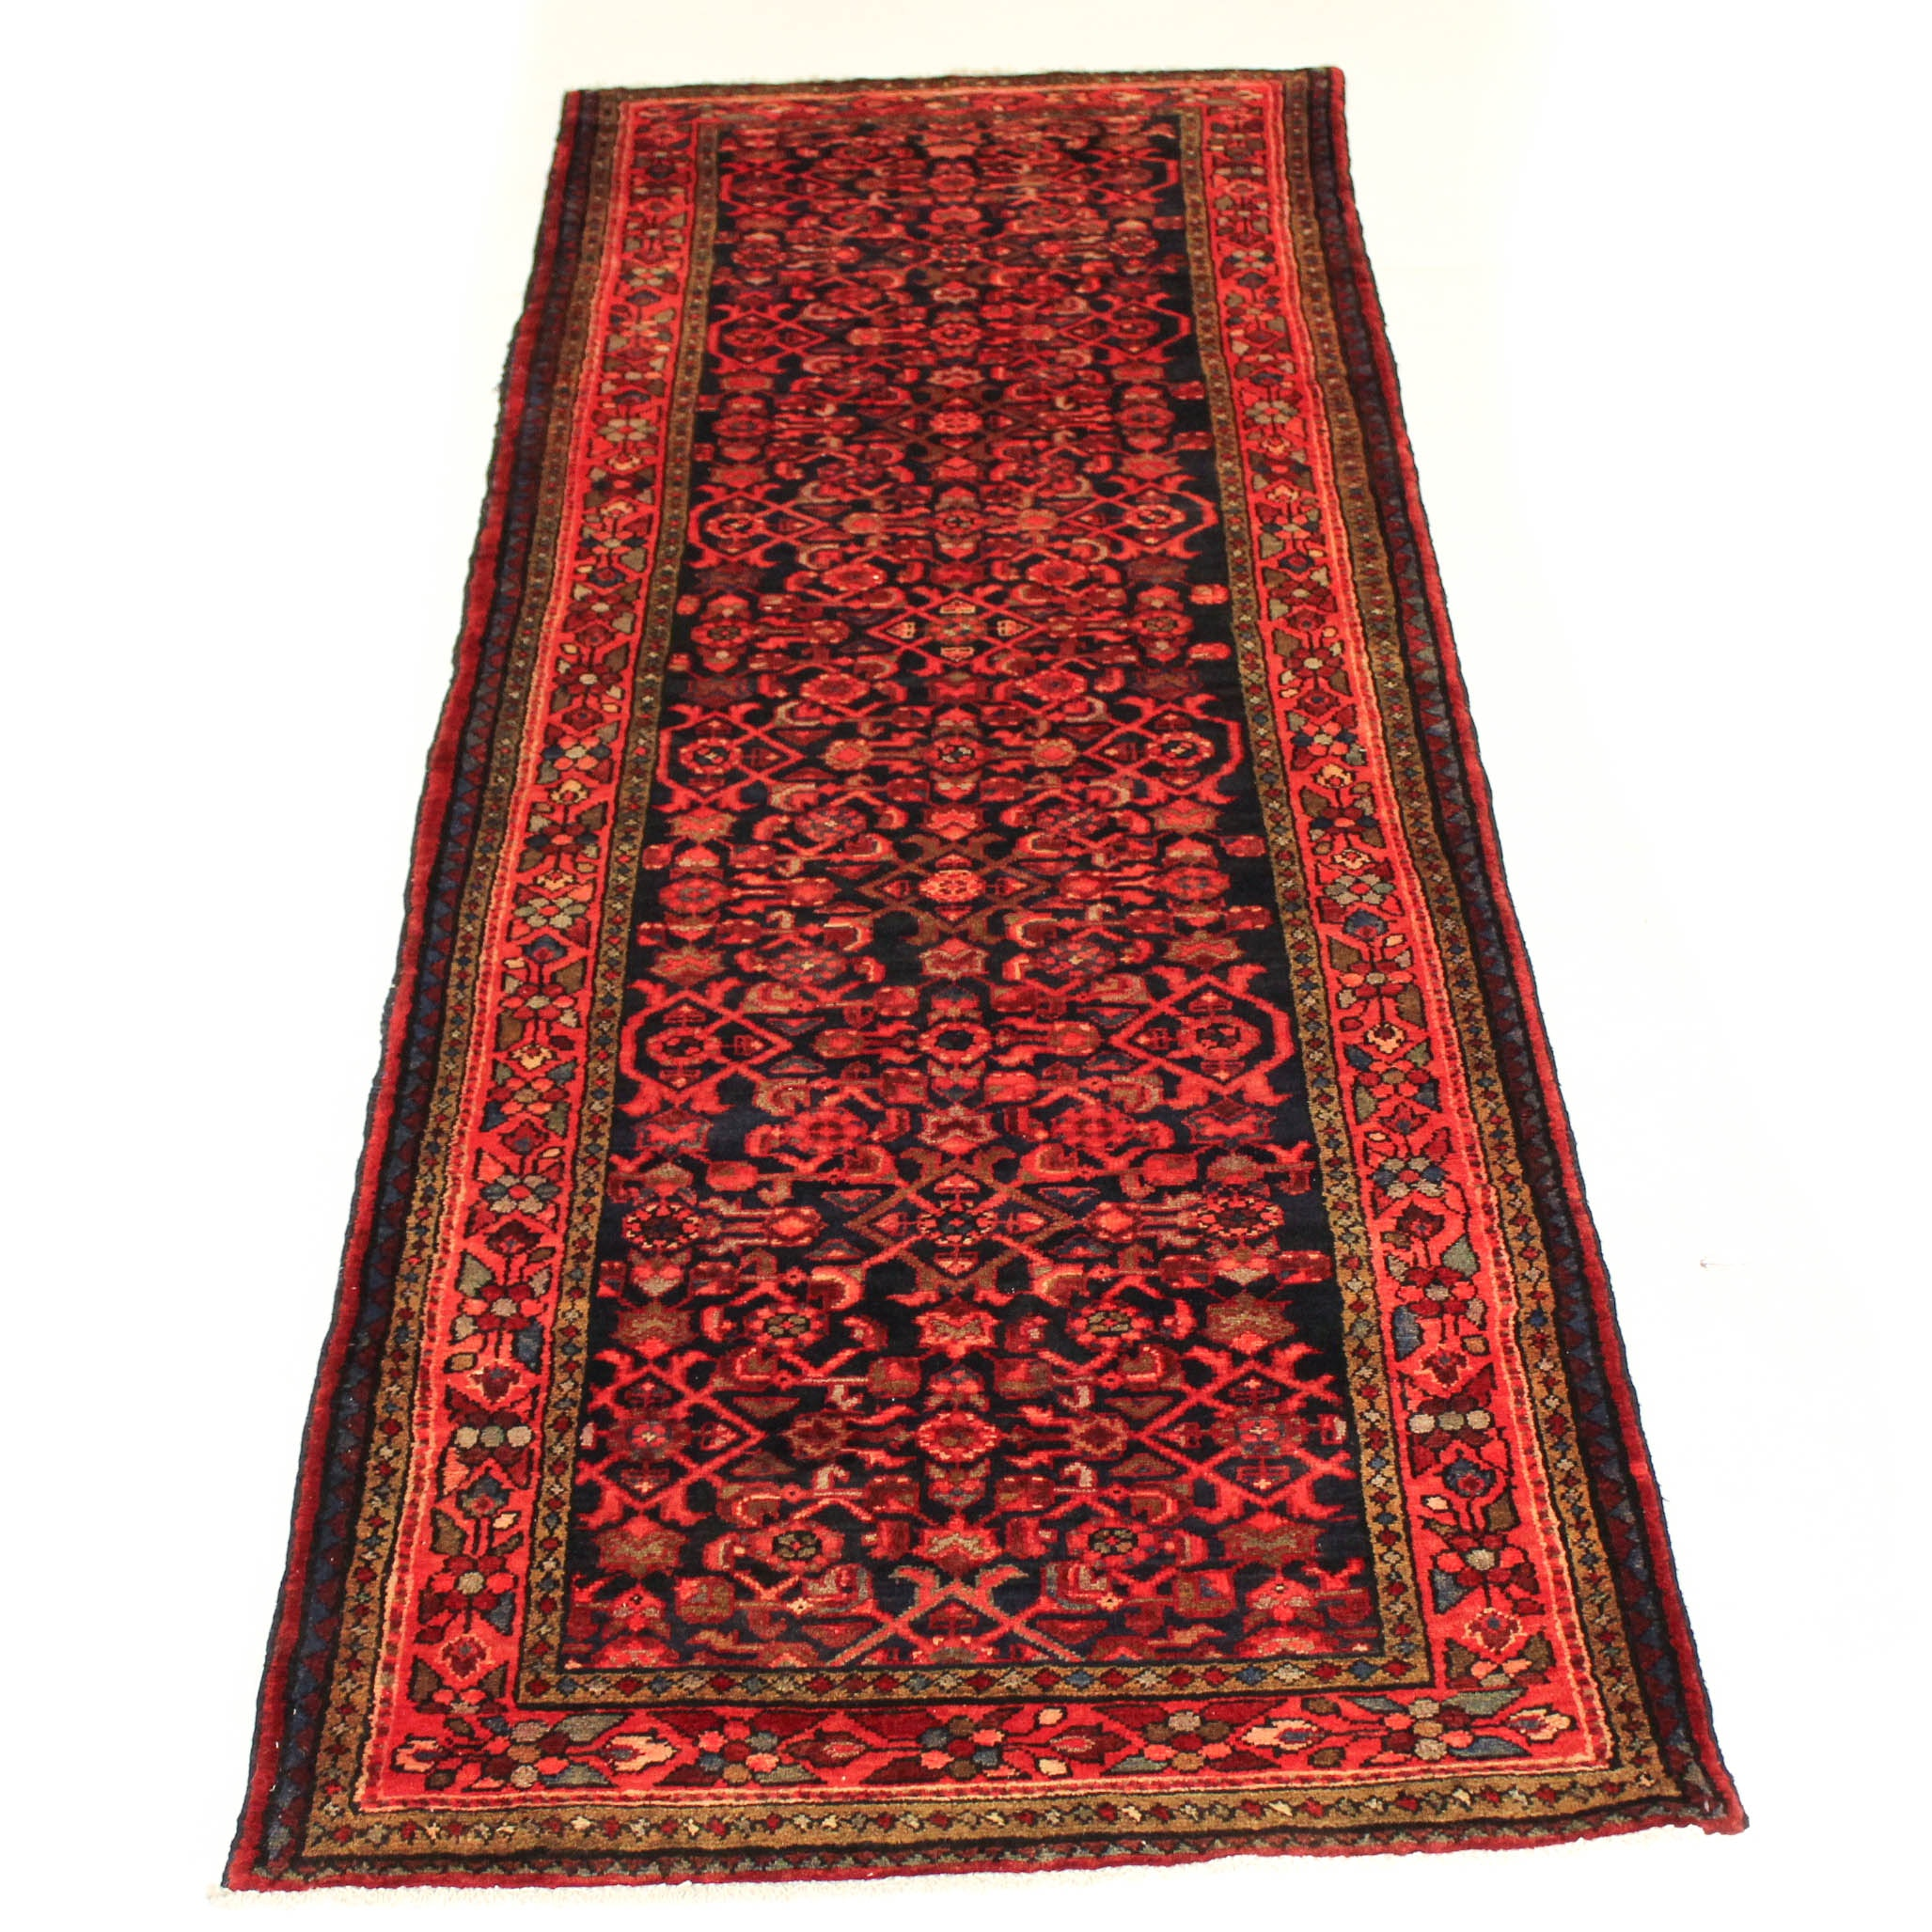 3'3 x 9'9 Semi-Antique Hand-Knotted Persian Mahal Carpet Runner